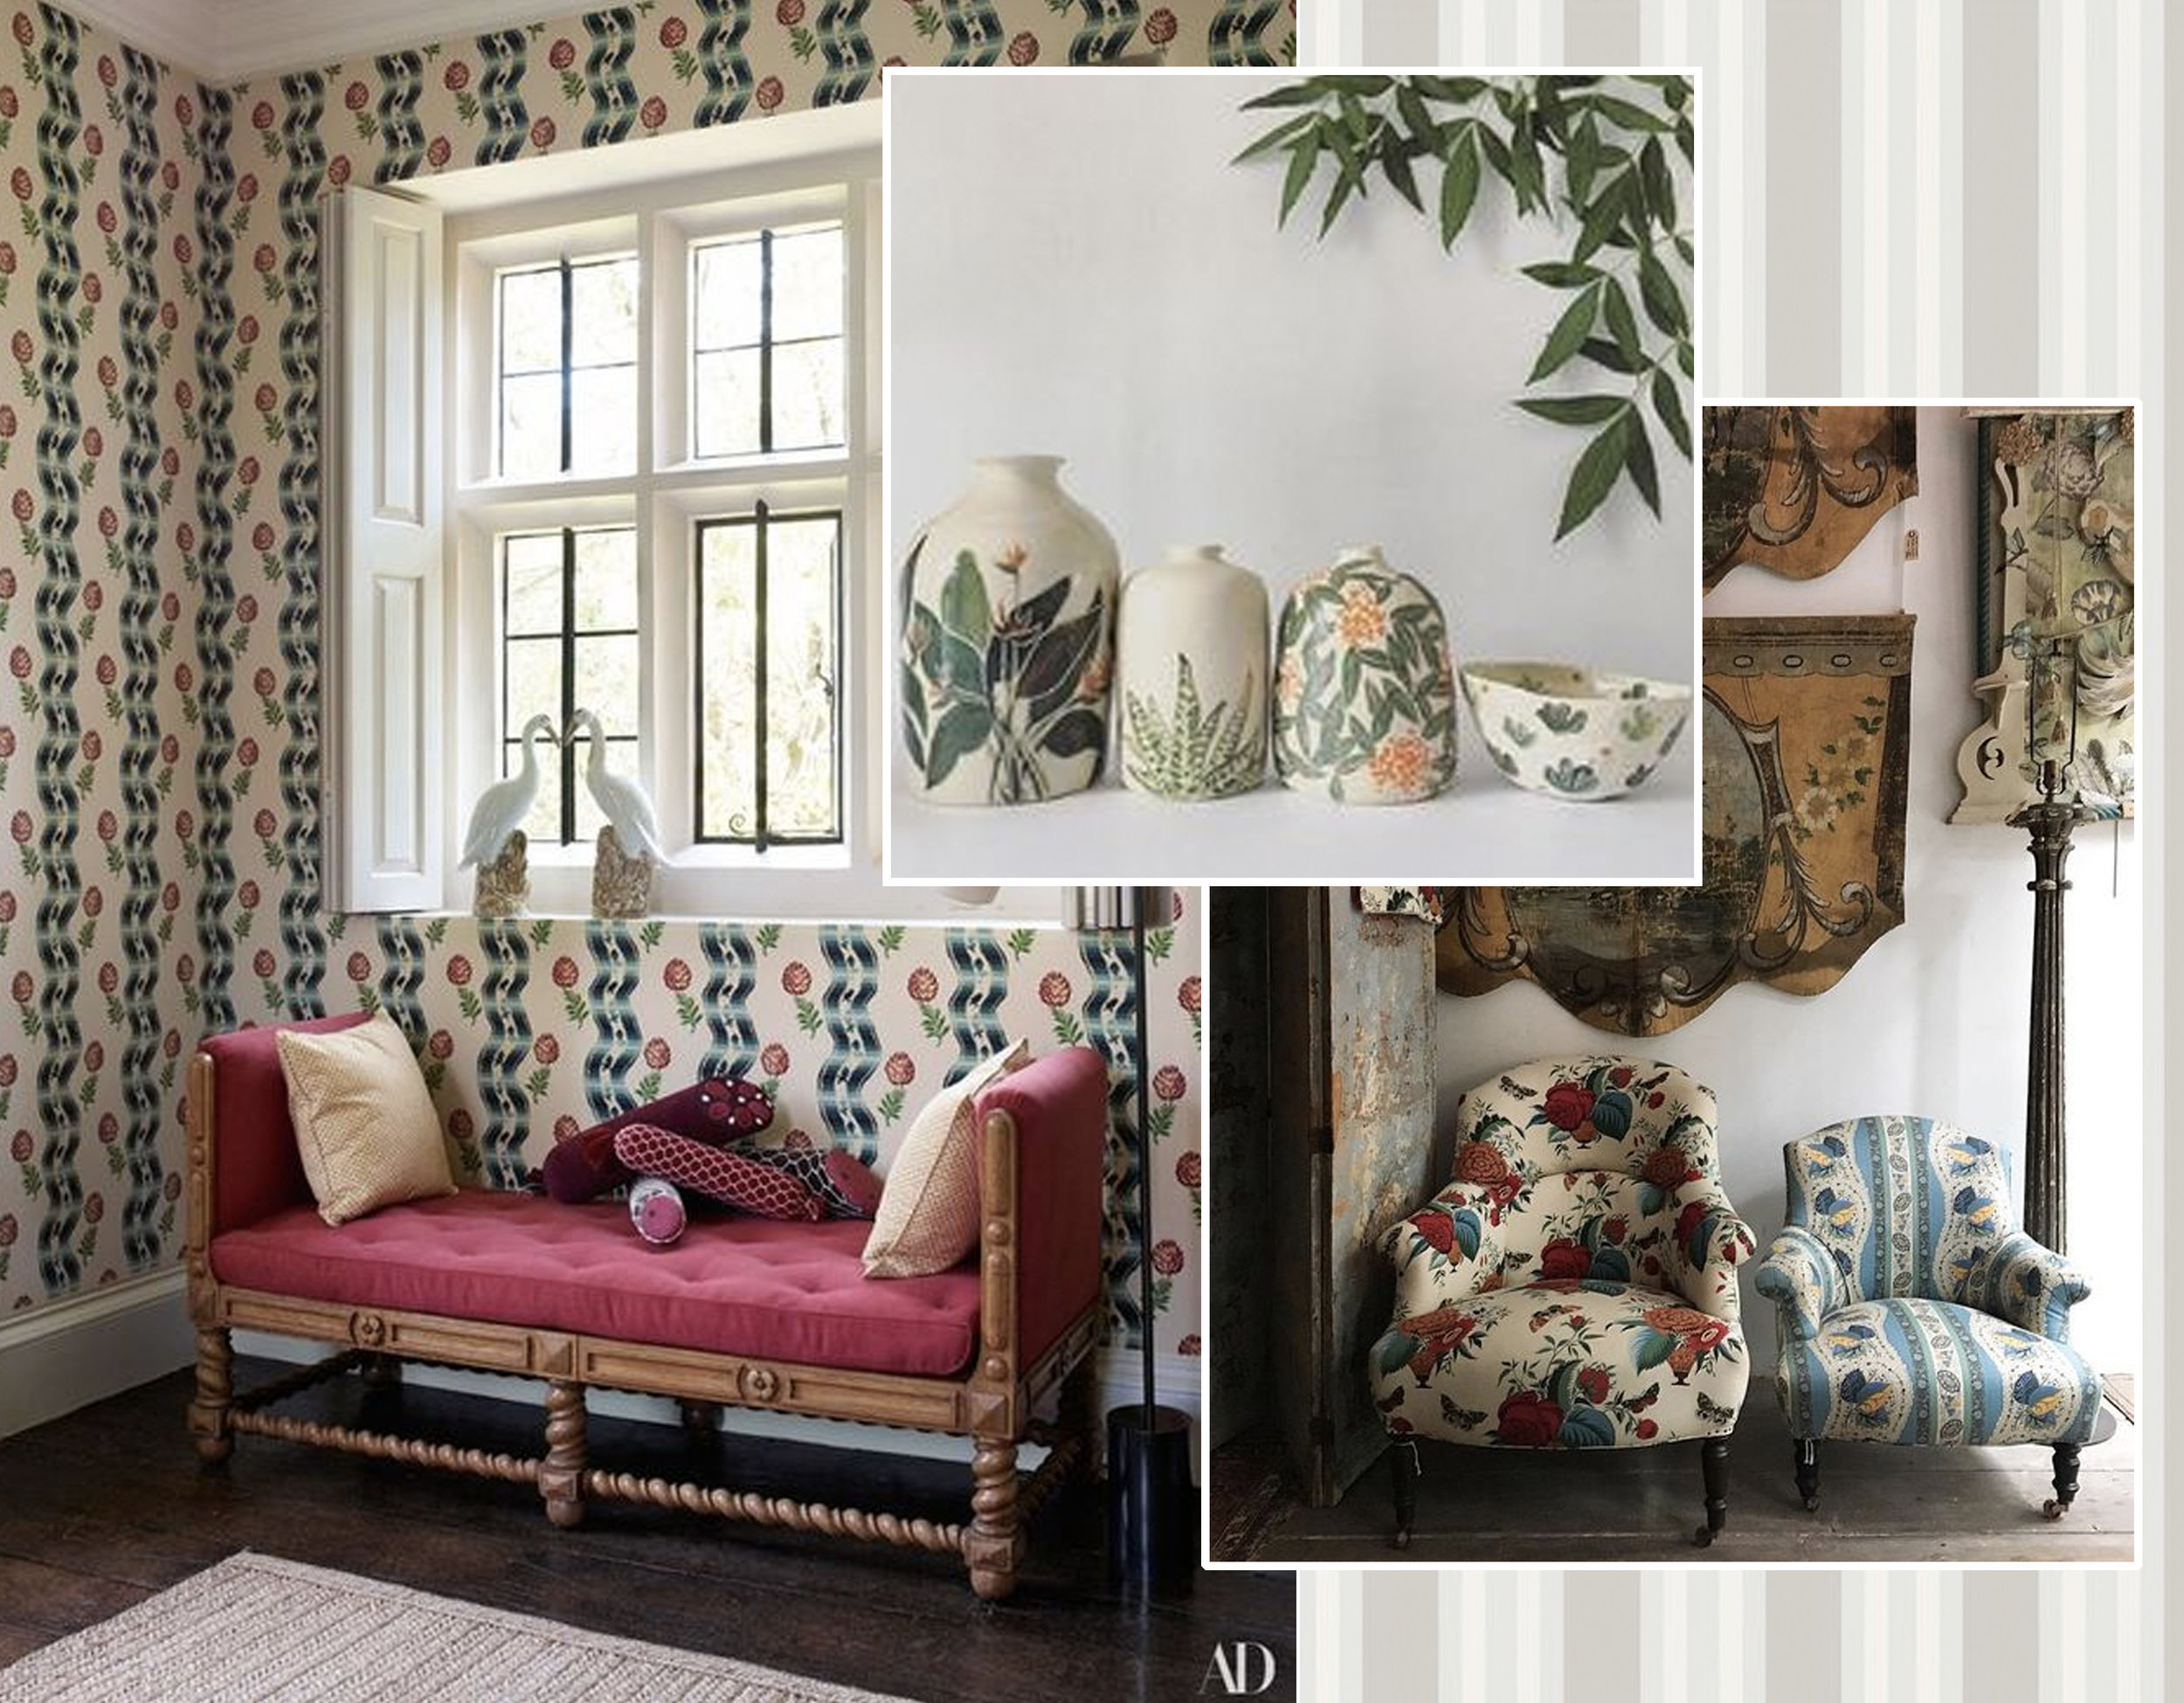 image entrance Claudia Schiffer's Tudor Mansion via  AD  - armchairs with floral upholstery  John Derian Company  - Polo Stripe wallpaper  Cole & Son